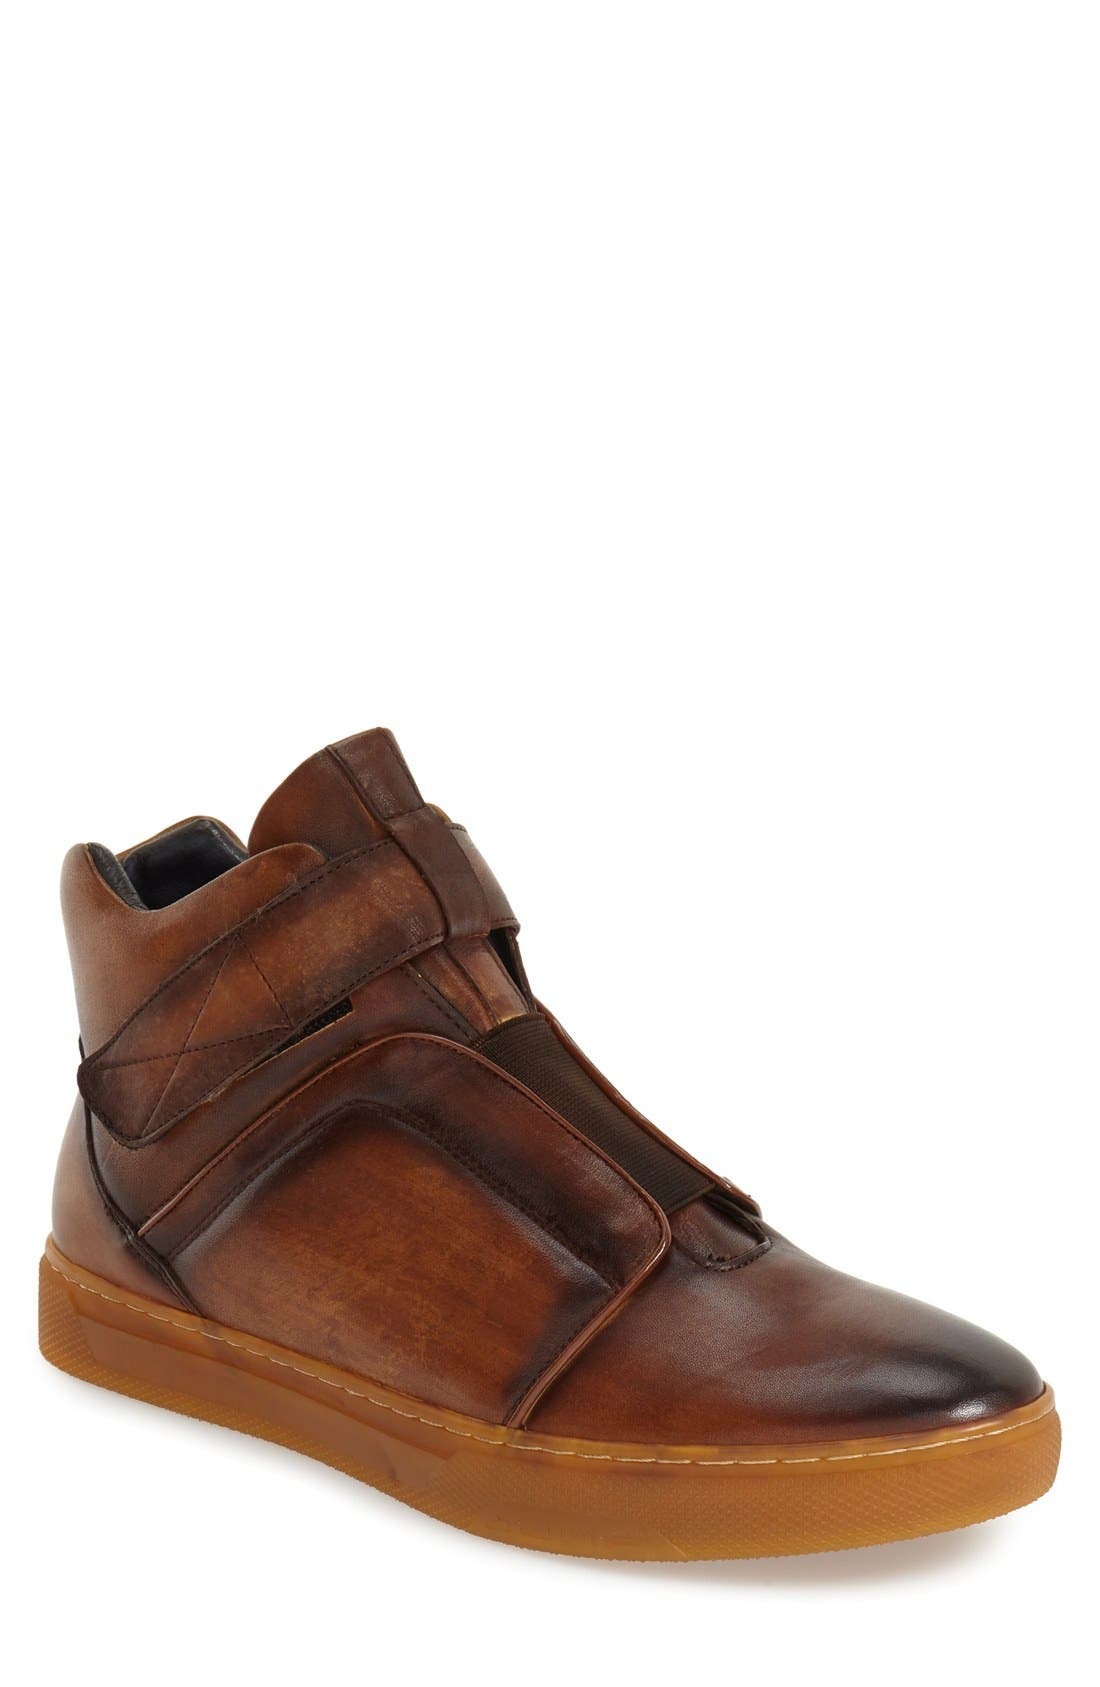 Scully High Top Sneaker,                             Main thumbnail 1, color,                             TAN LEATHER